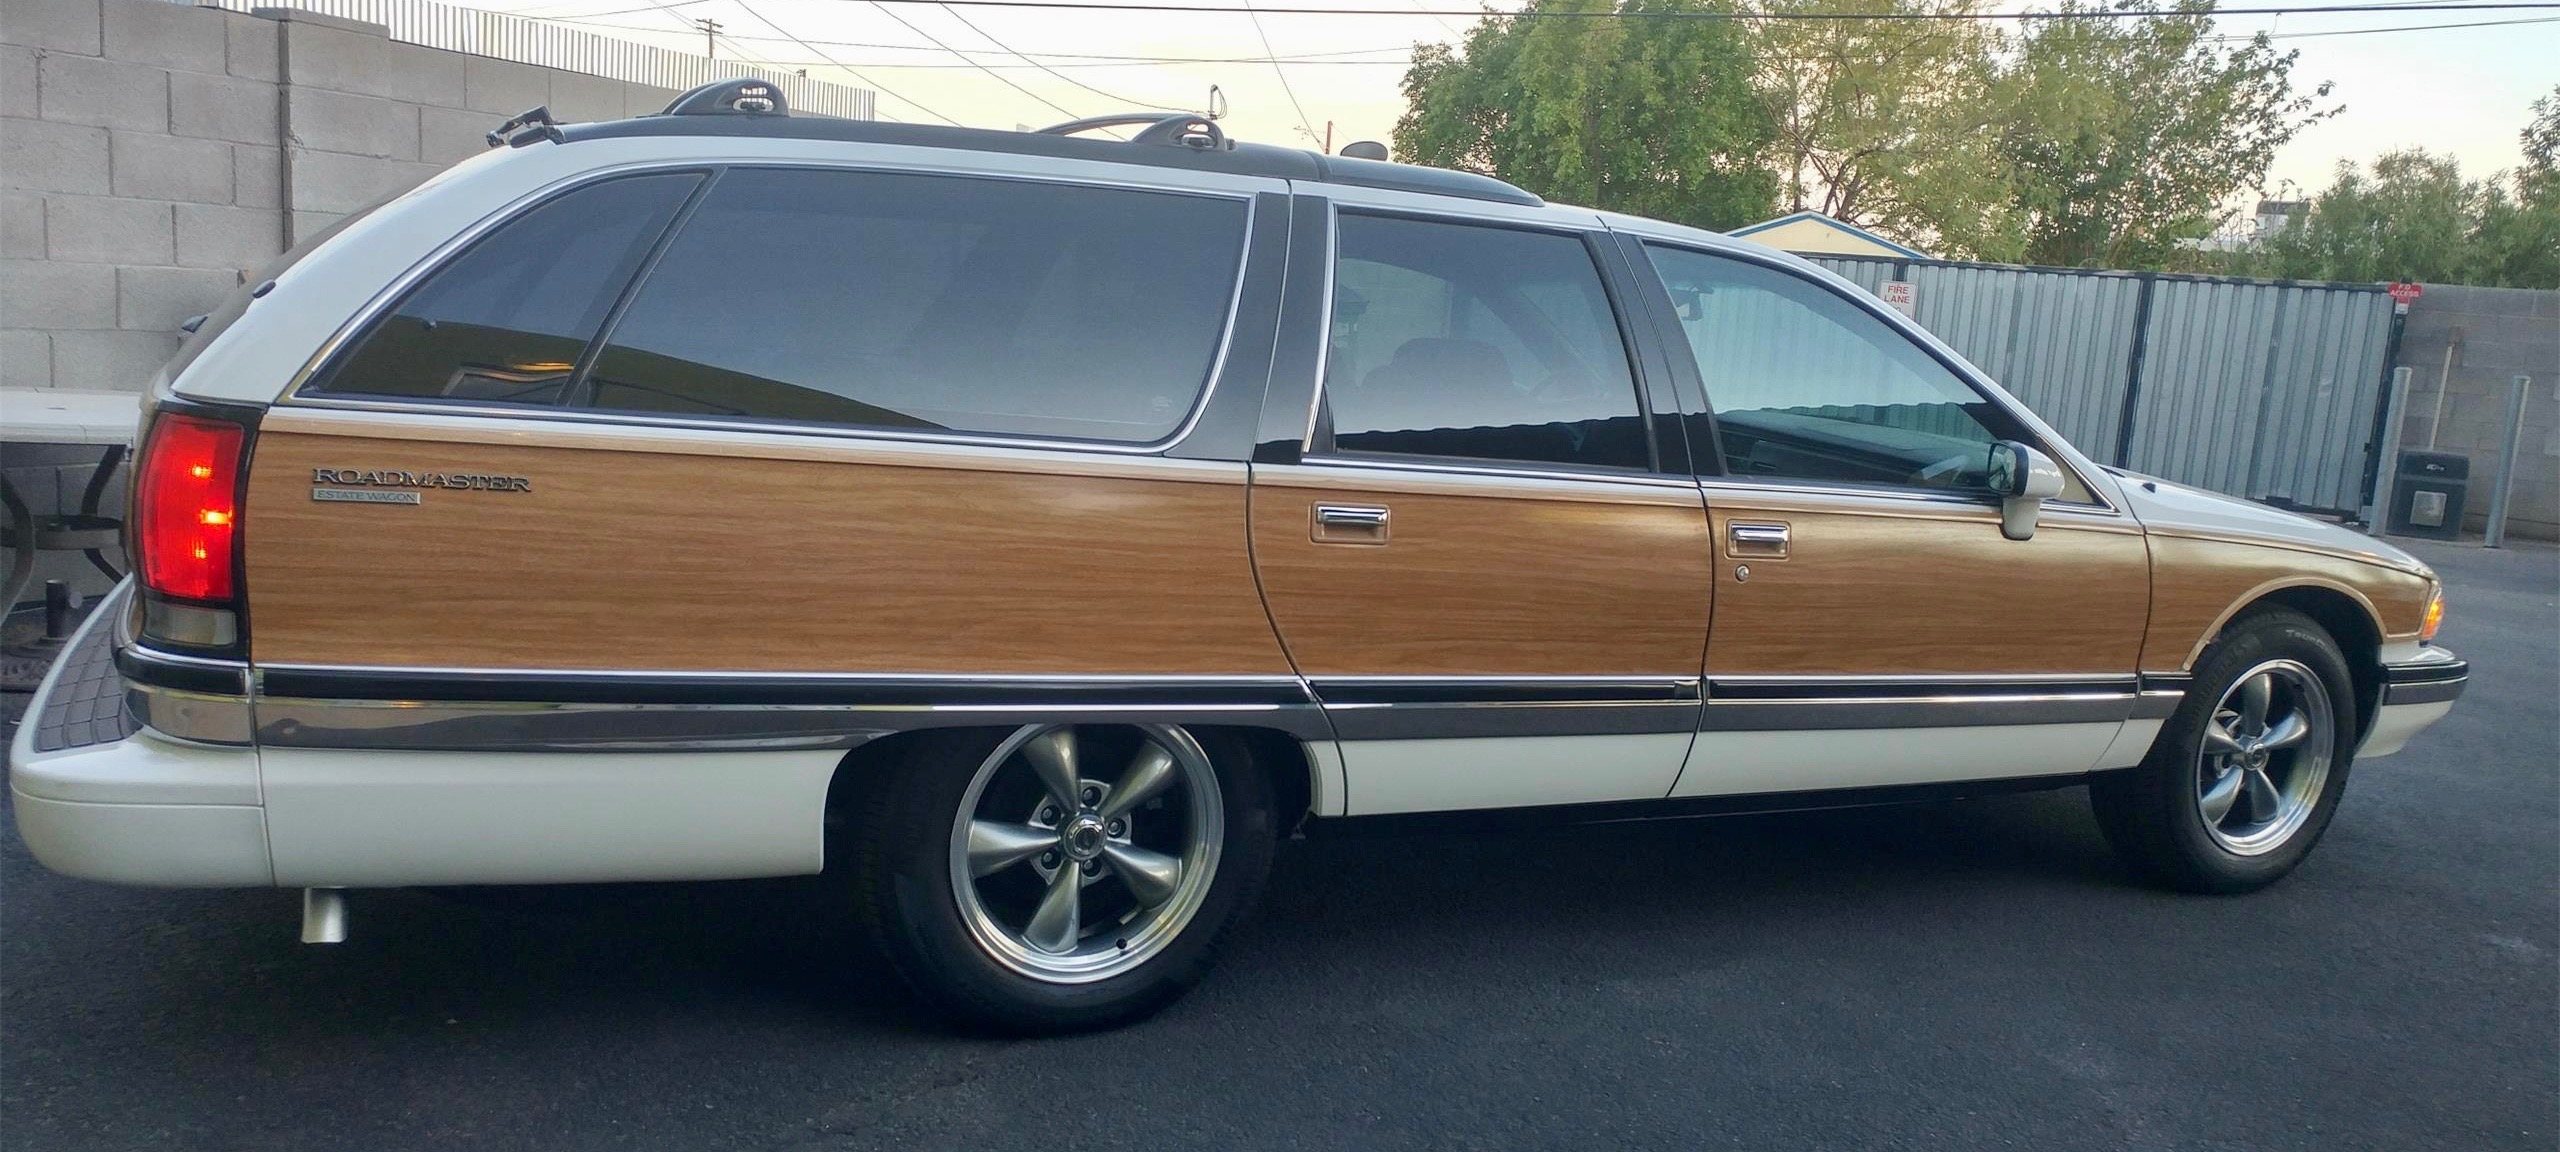 Station wagon, Wagons, ho! Remember when families traveled in three-row station wagons?, ClassicCars.com Journal